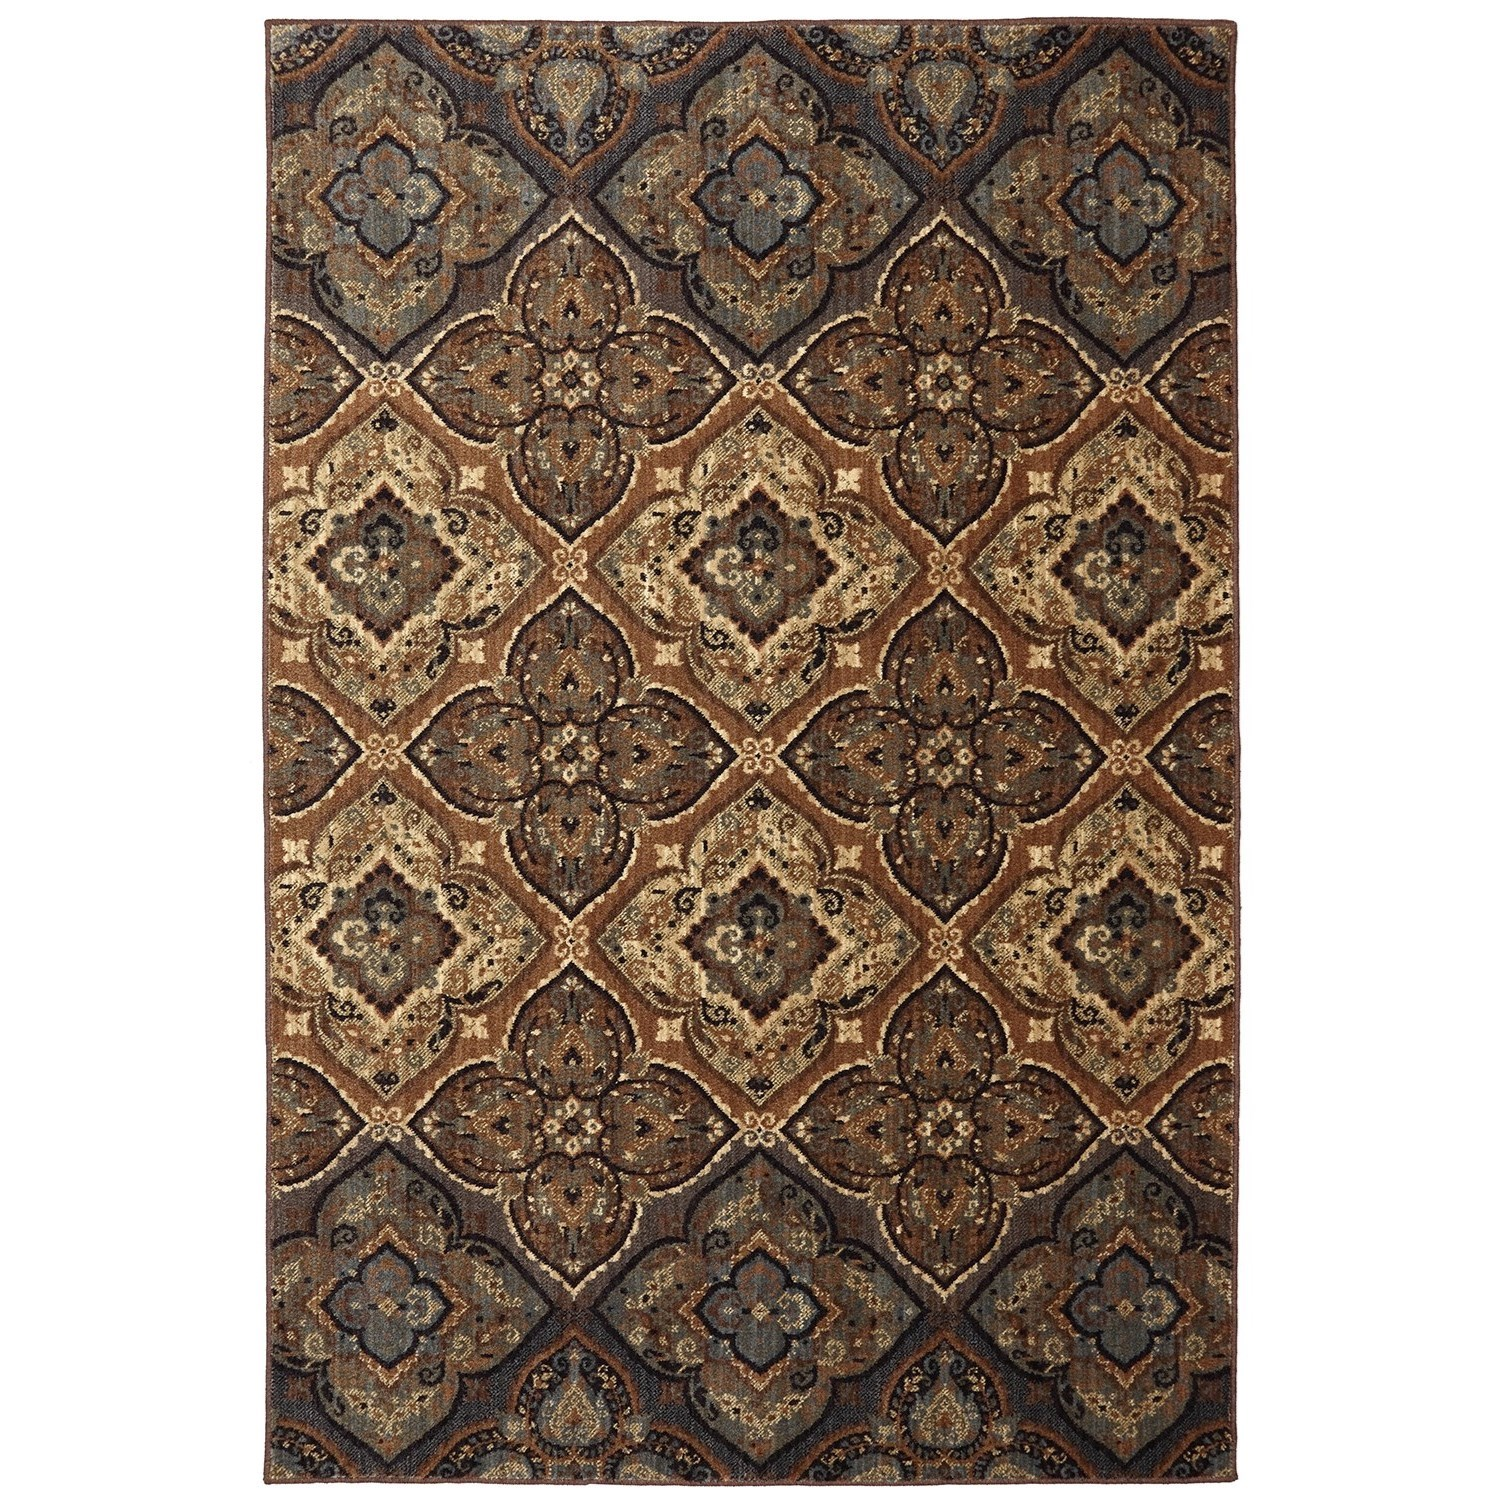 Dryden 8'x11' Chapel Tundra Area Rug by American Rug Craftsmen at Alison Craig Home Furnishings